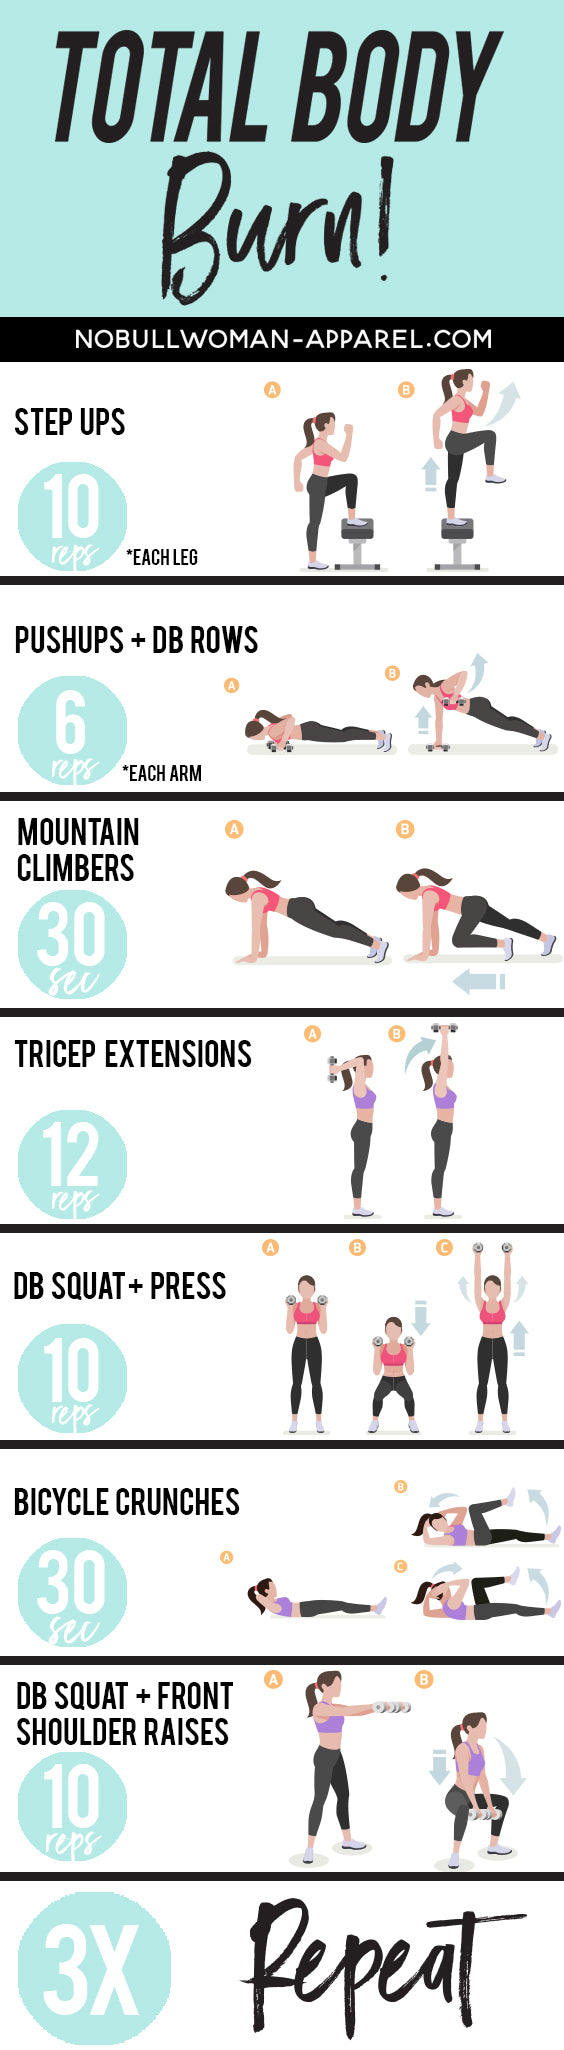 Total Body Burn - Printable Workout